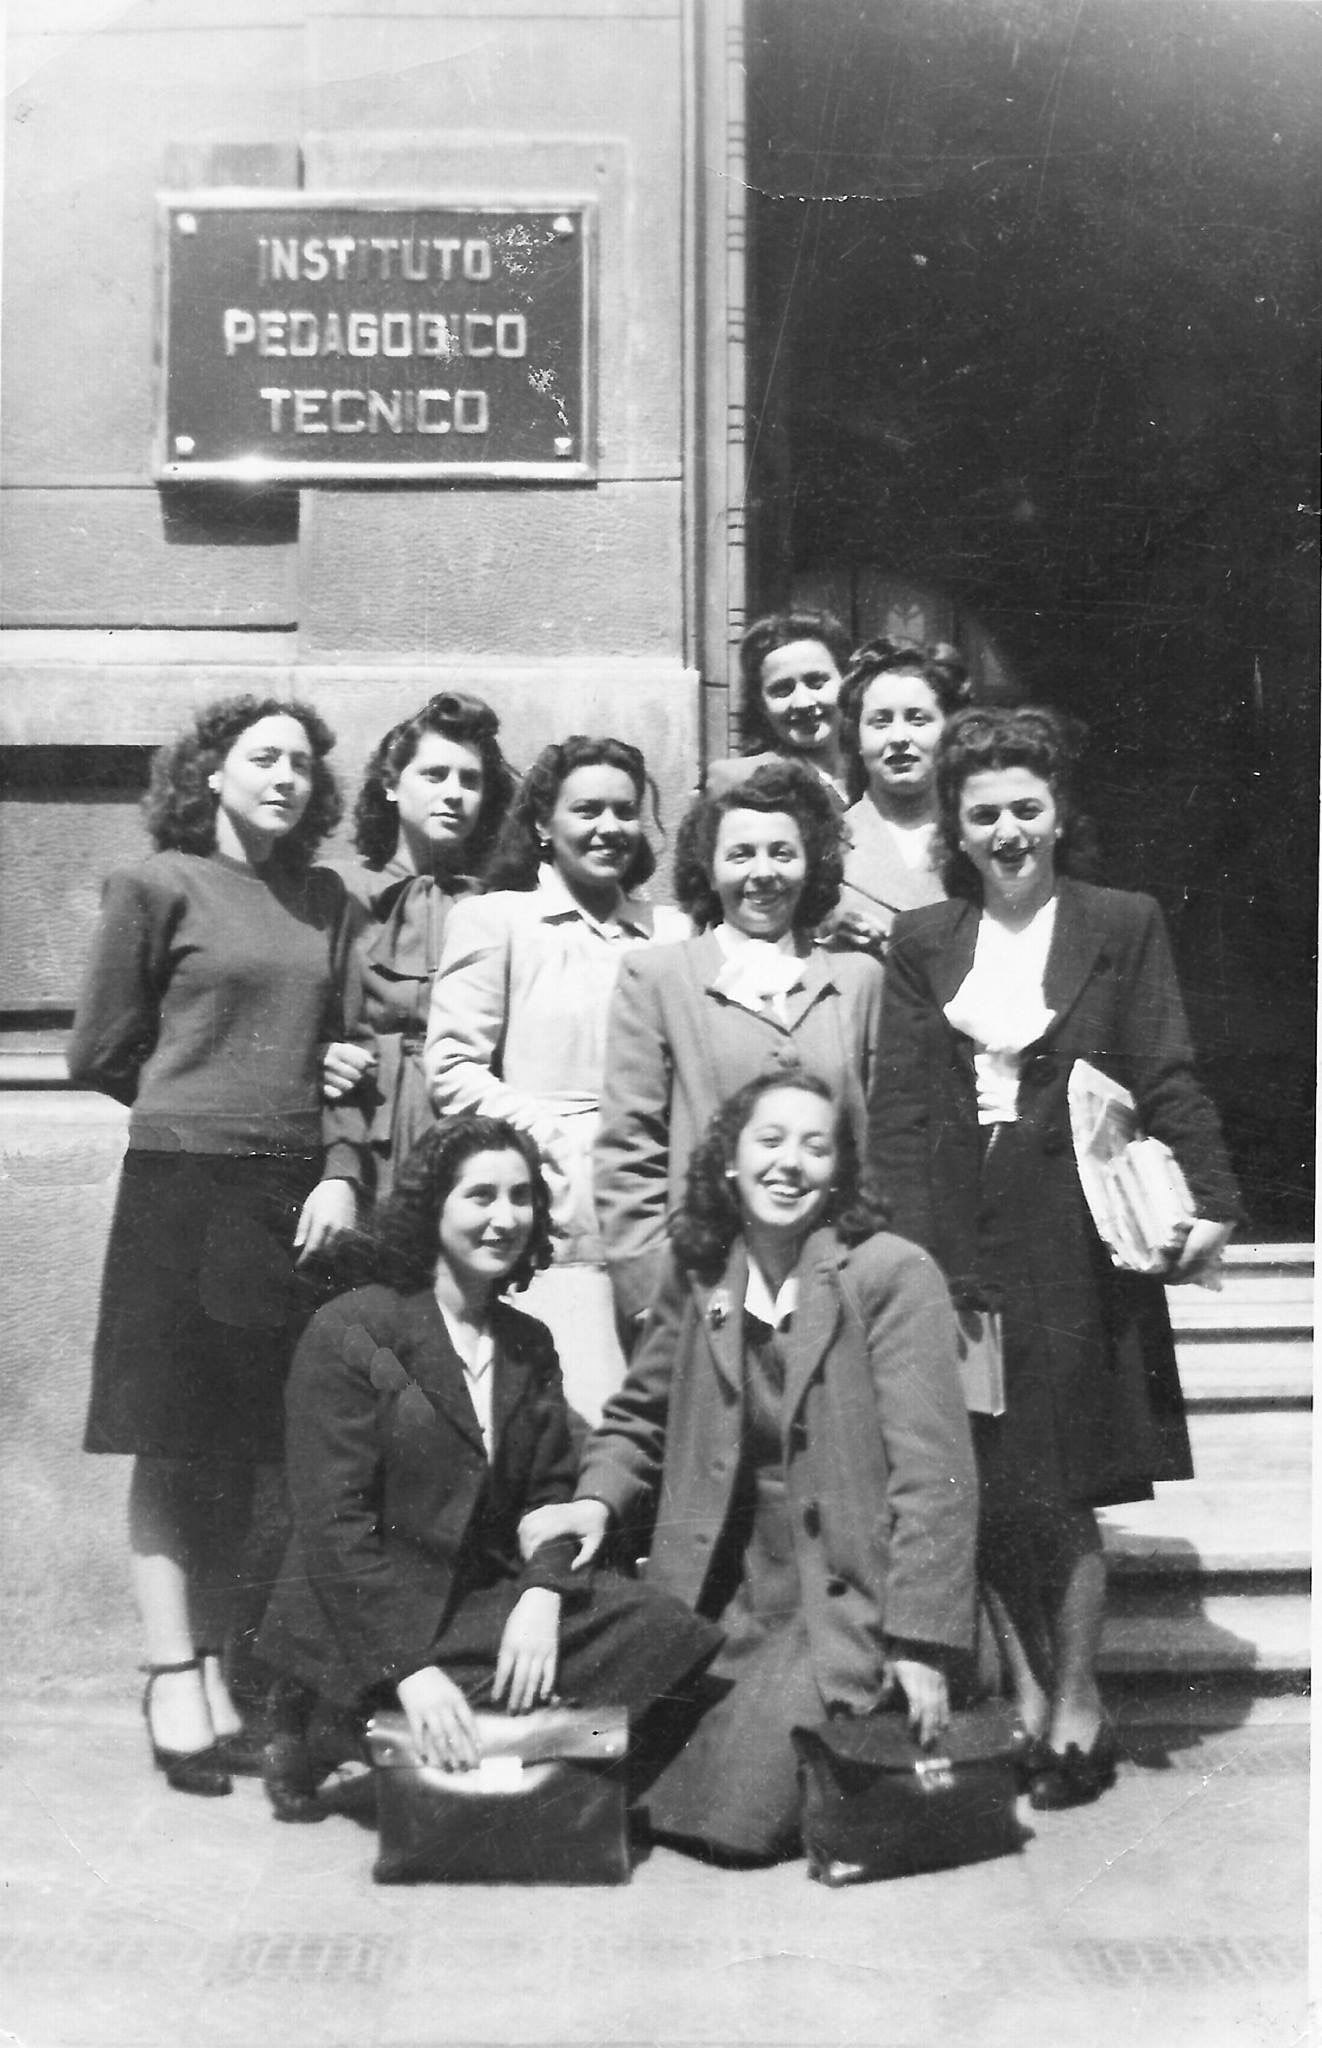 Enterreno - Fotos históricas de chile - fotos antiguas de Chile - Alumnas de IPT, Santiago en 1949